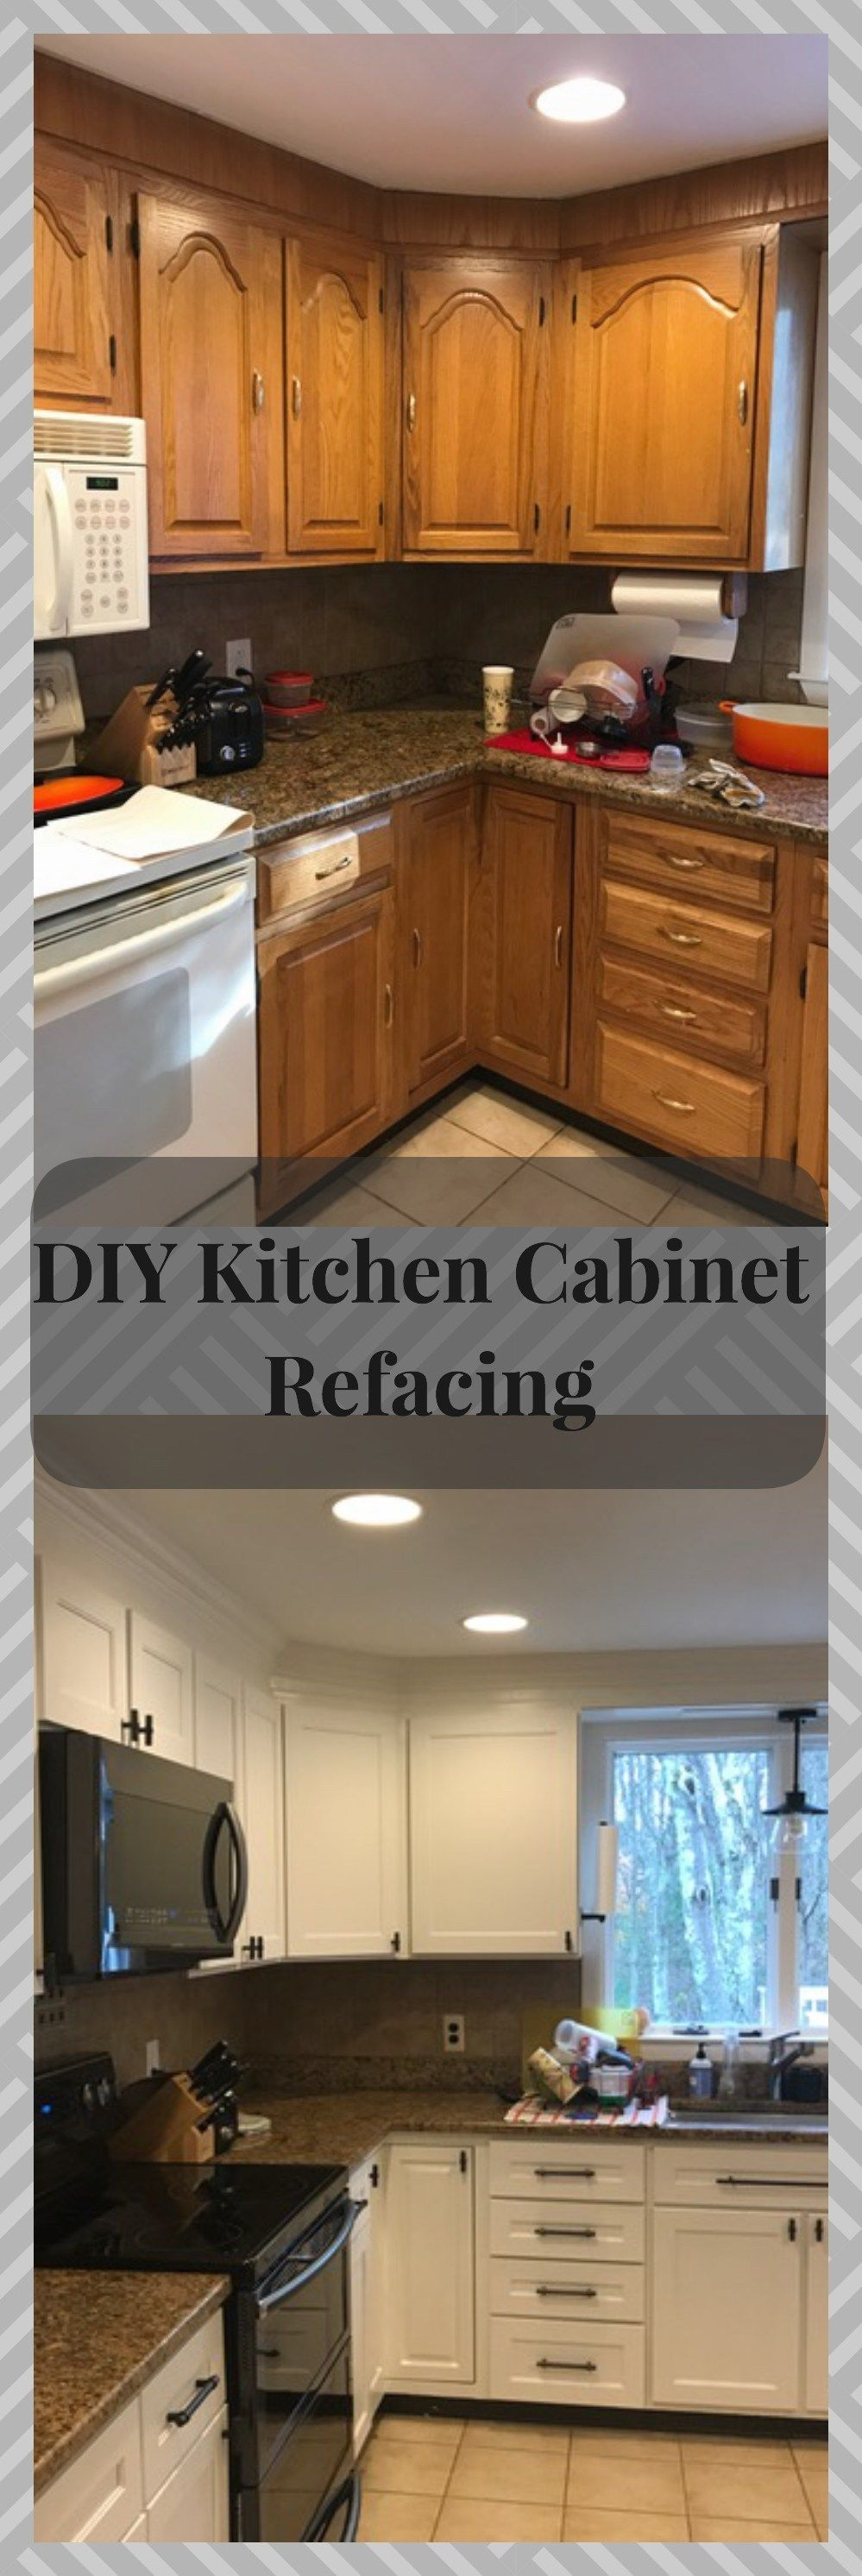 Based Product So I Ended Up Doing One More Light Coat Of Paint To Calm Down The Discolo Diy Kitchen Cabinets Refacing Kitchen Cabinets Diy Kitchen Renovation